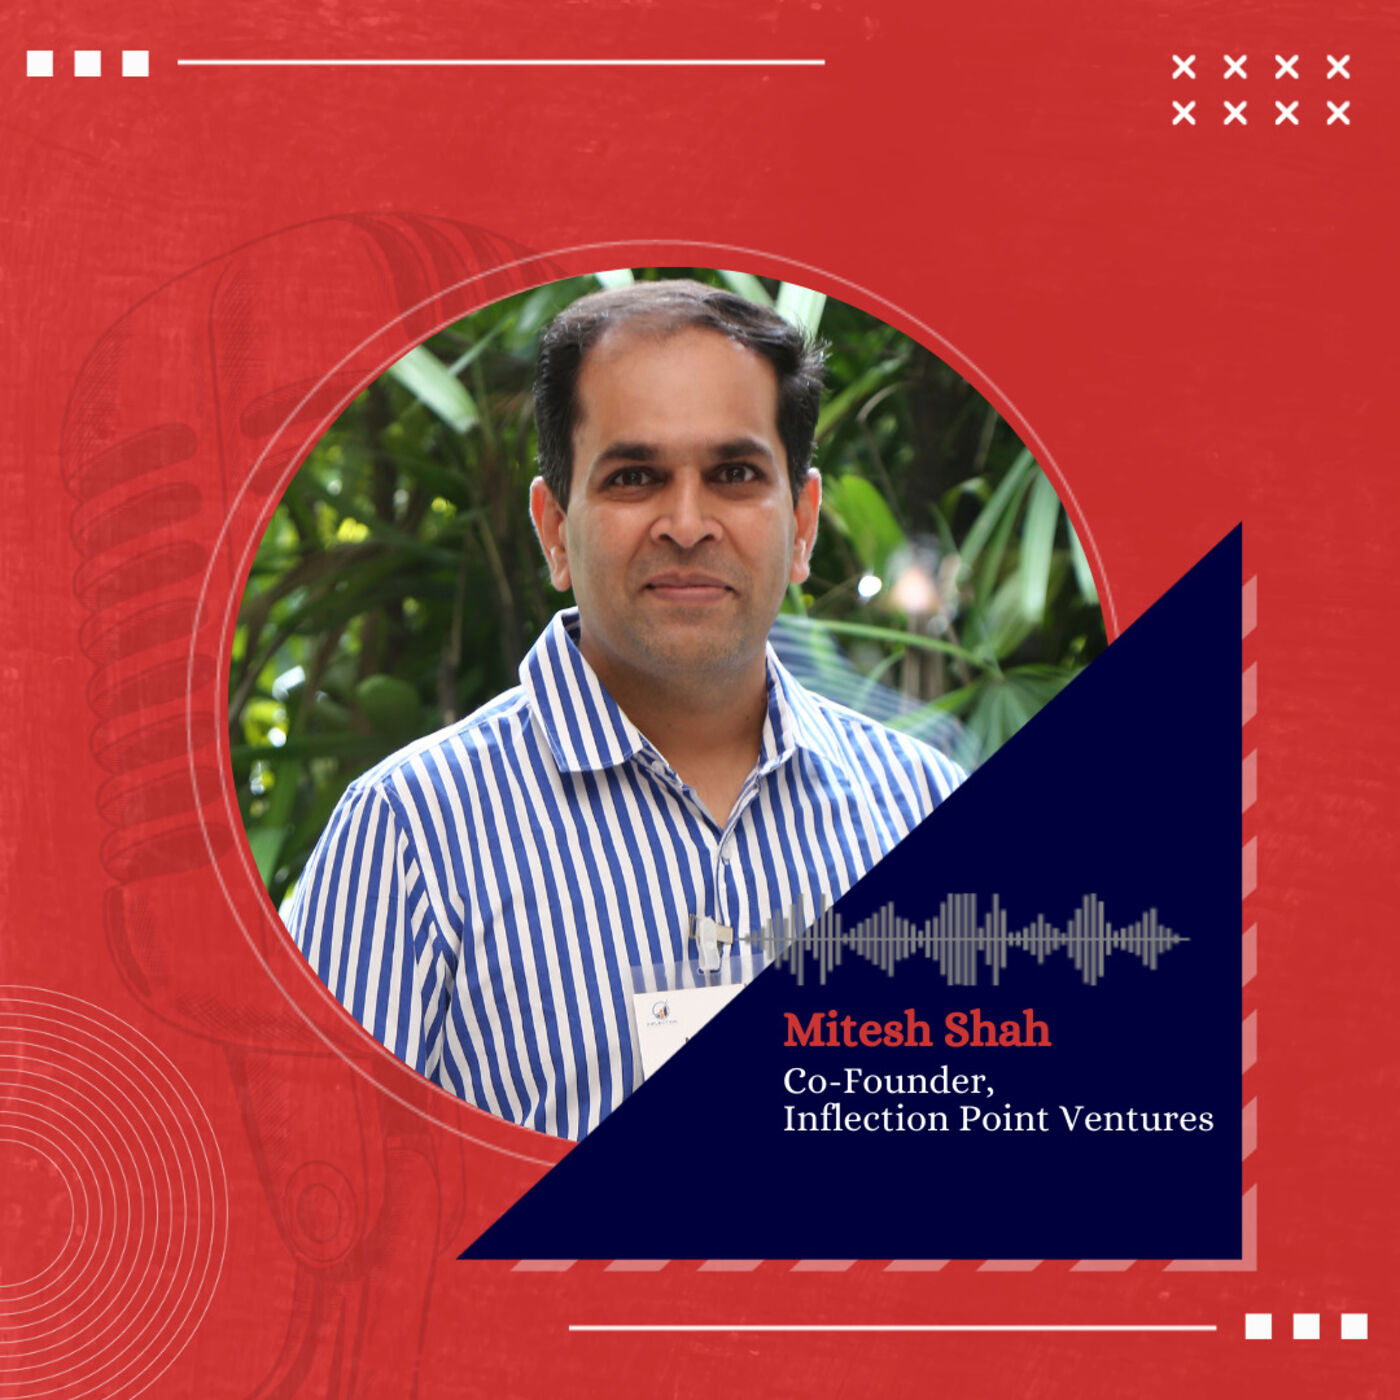 Mitesh Shah from being a CFO at Ola & BookMyShow to start Inflection Point Ventures